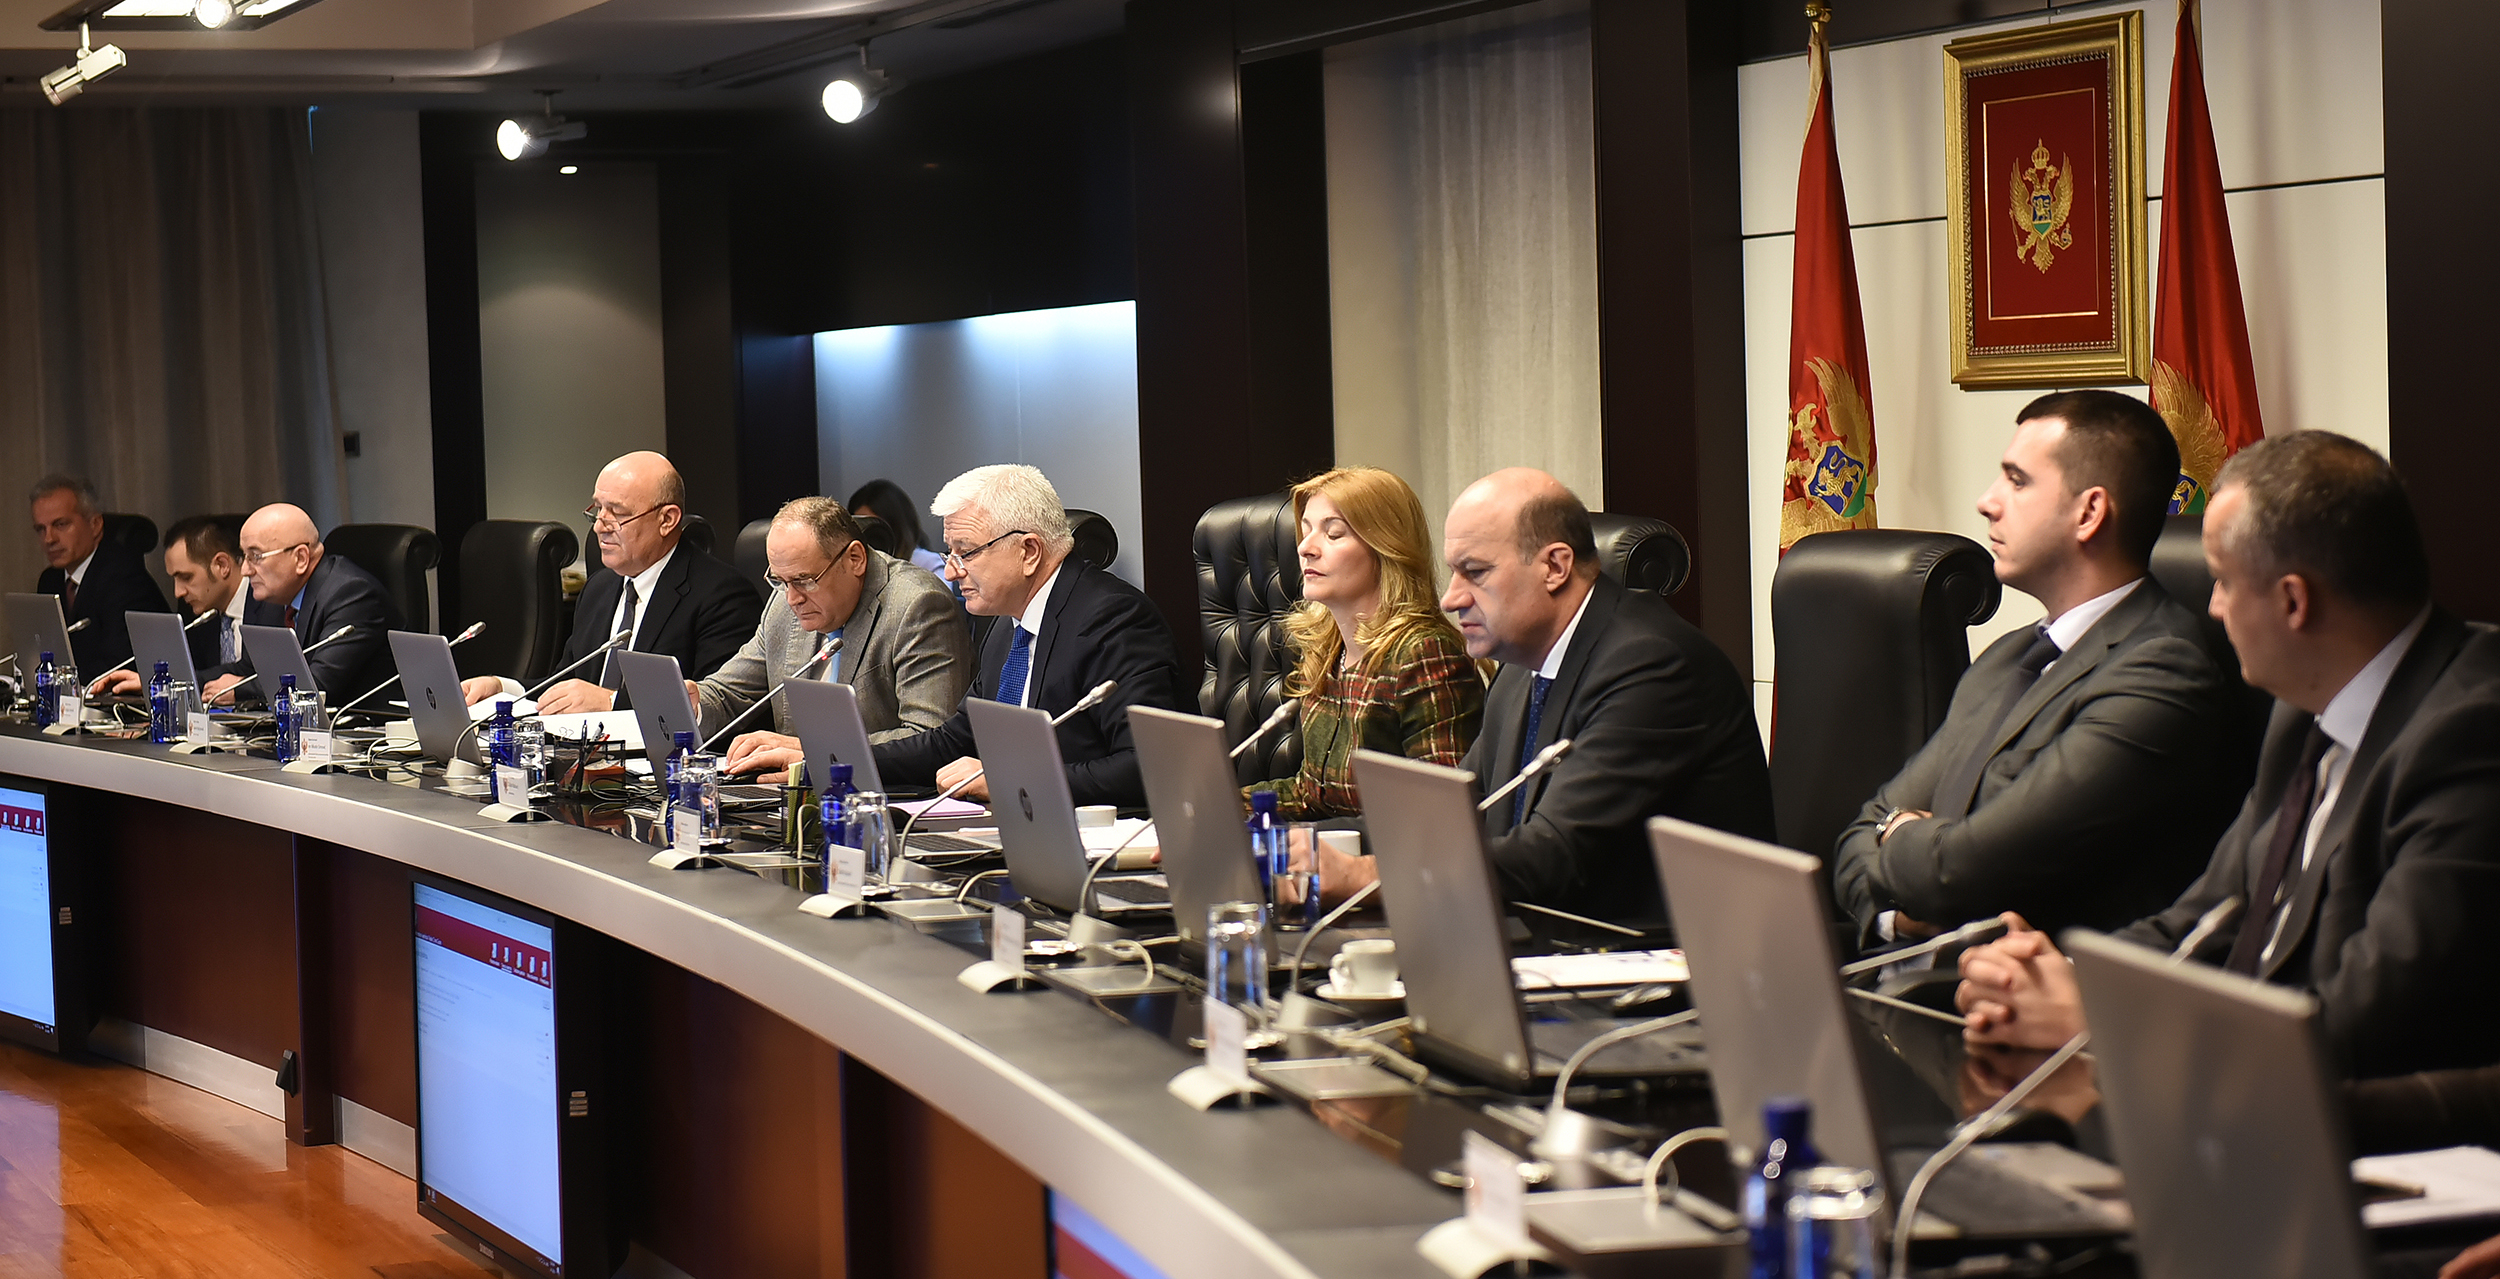 Montenegrin Government secures funds to buy A2A shares in EPCG